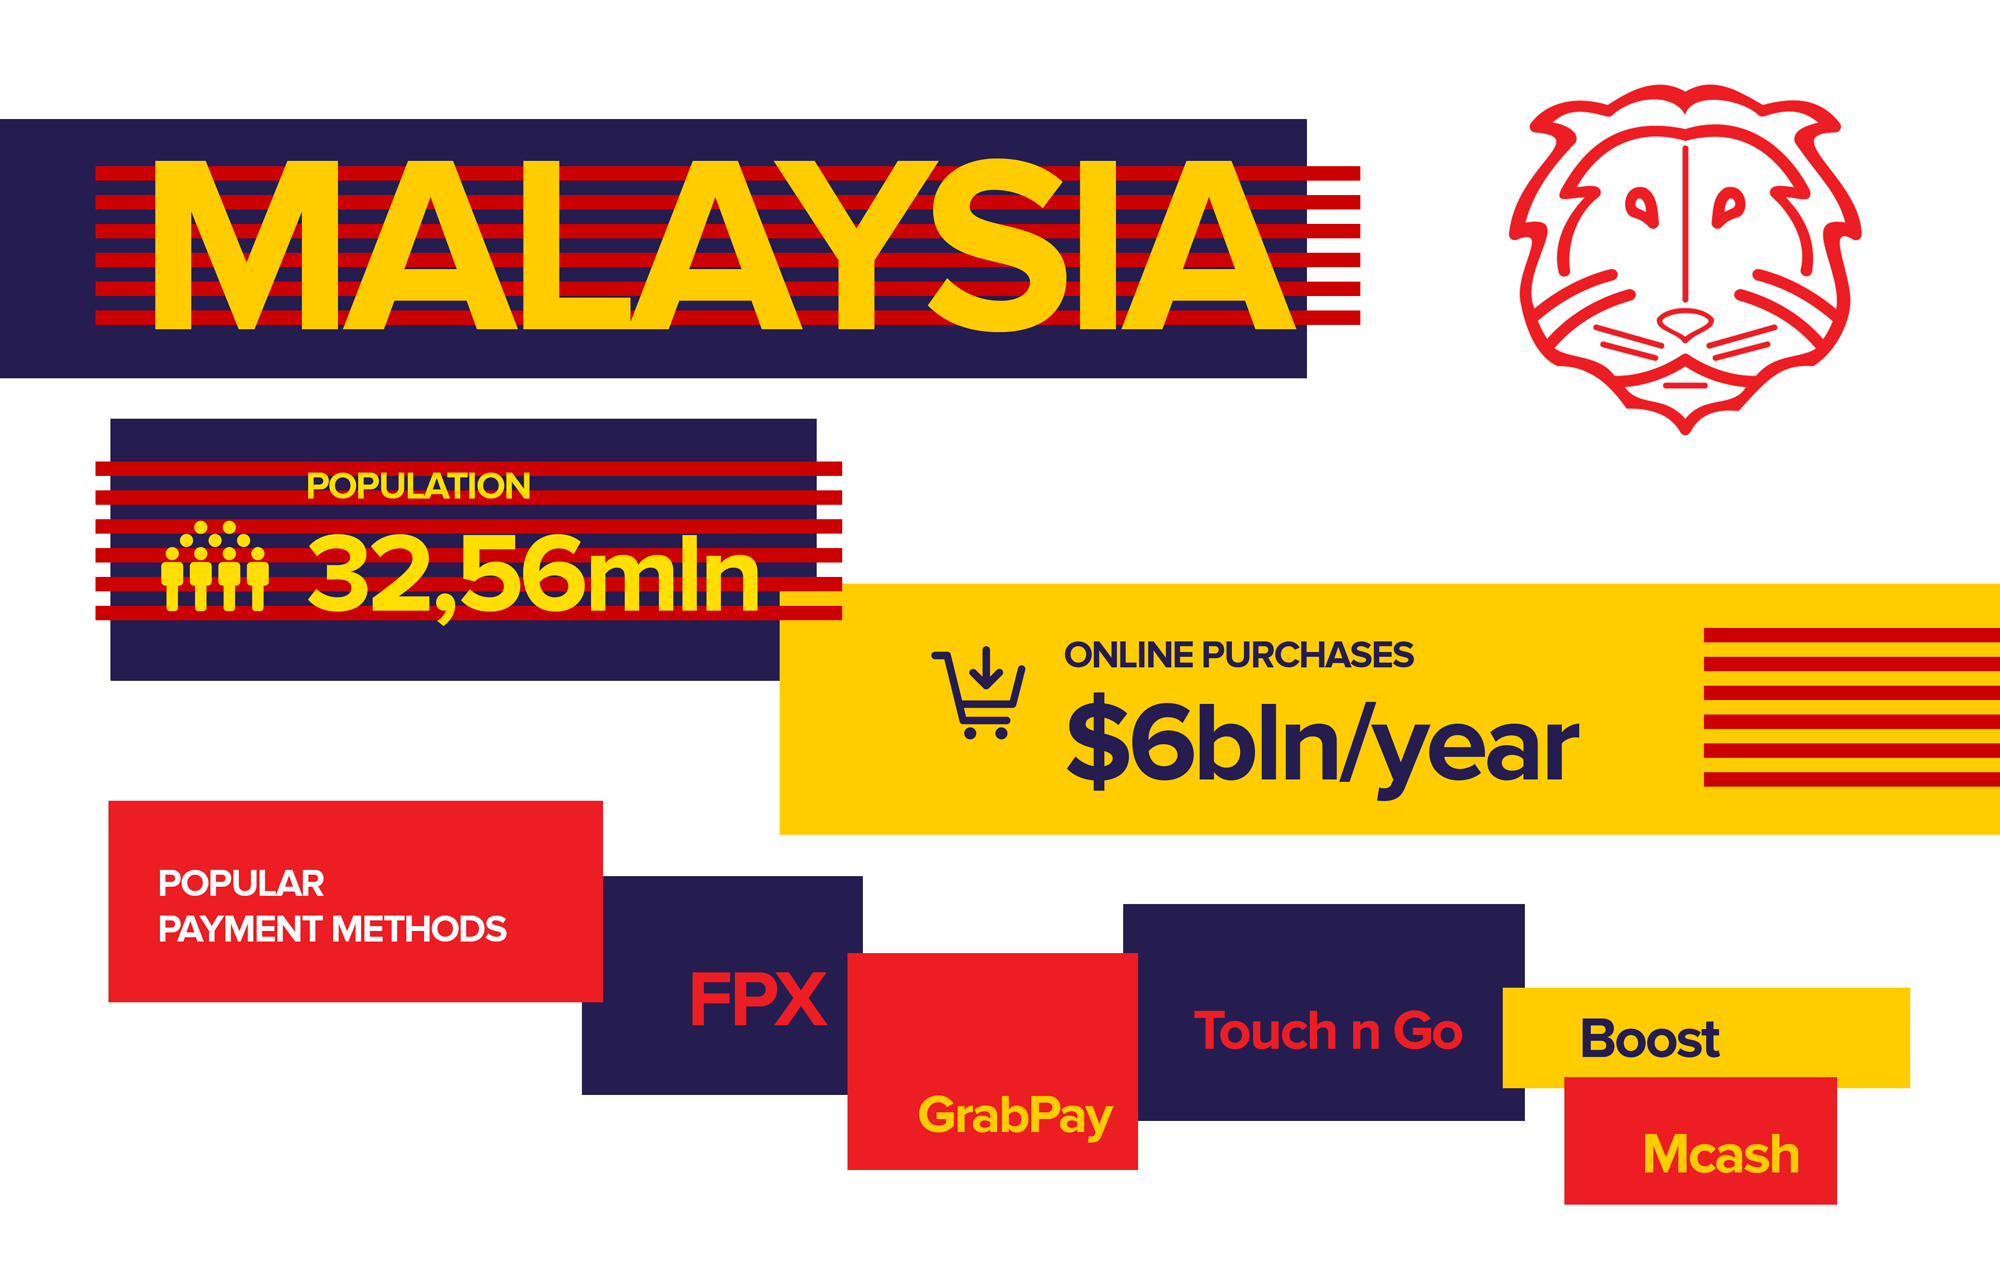 Specifics of Malaysian payments market